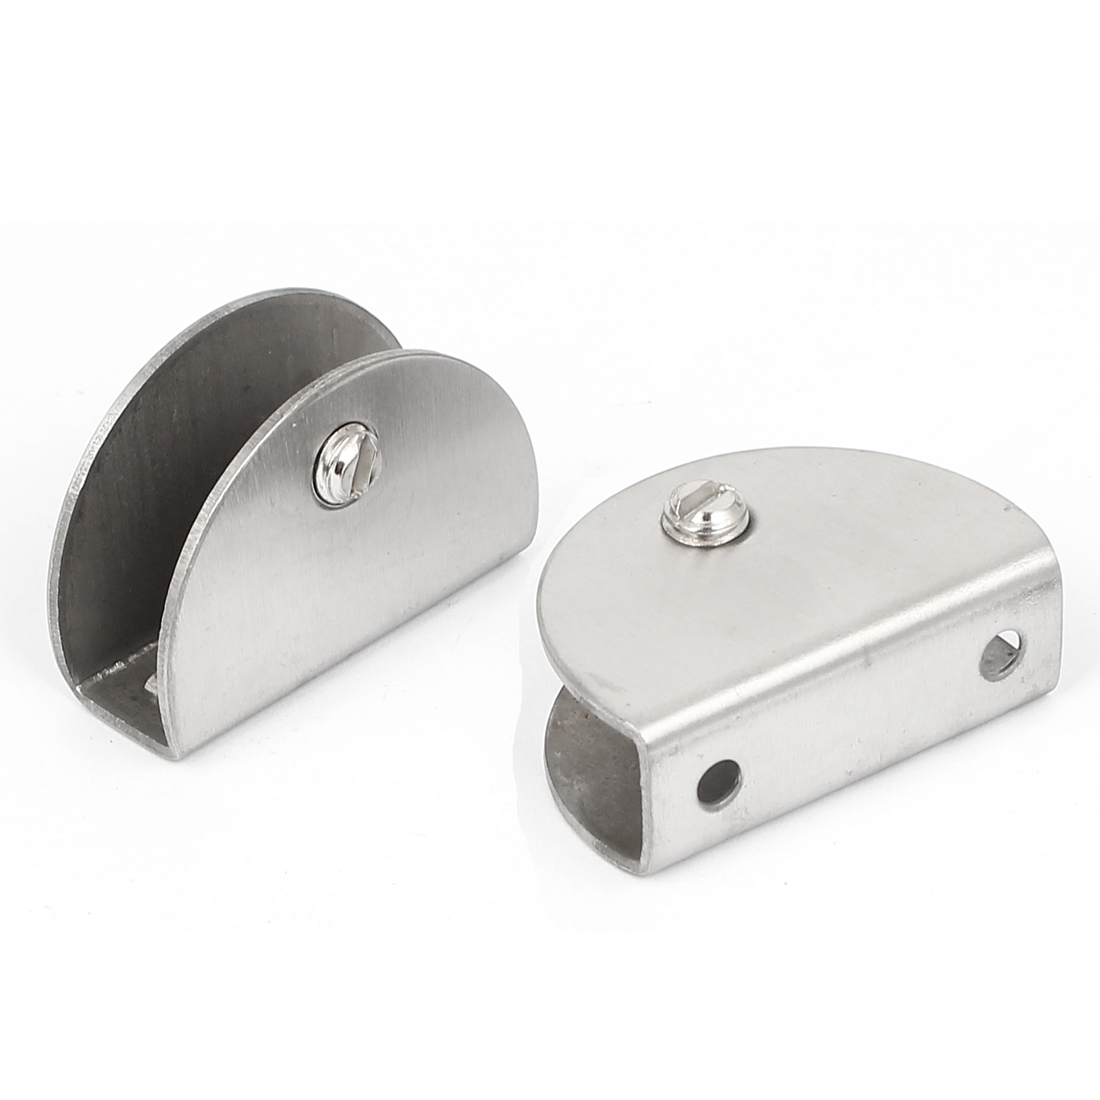 Stainless Steel 13mm Thickness Glass Shelf Clip Clamp Bracket Support 2 Pcs